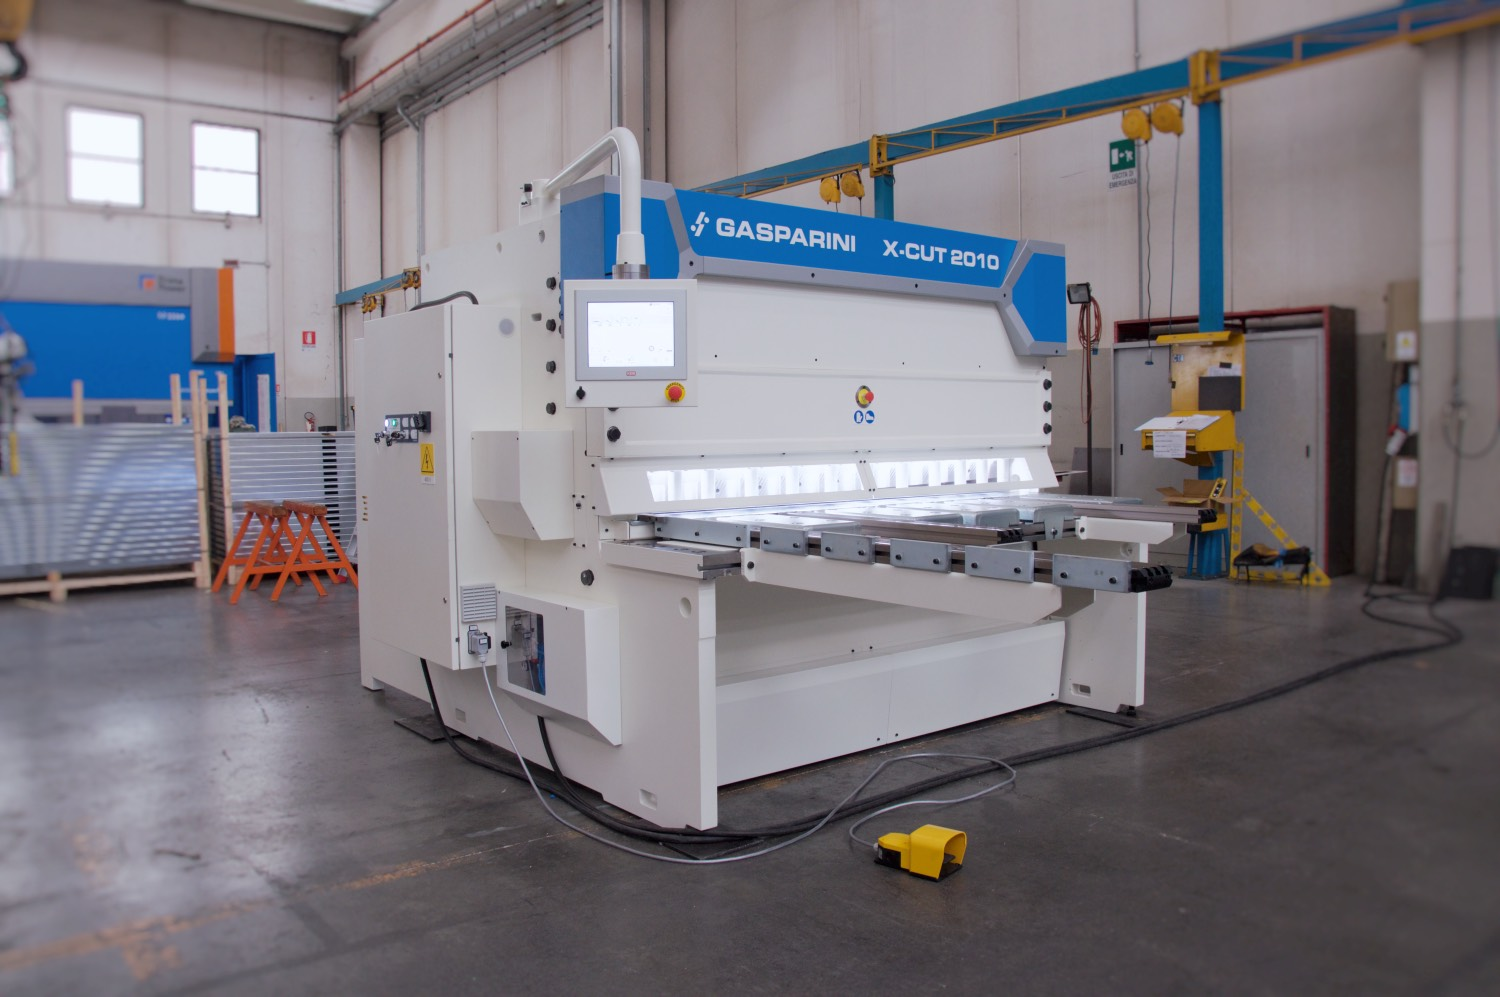 guillotine shear sheet metal reliable accurate